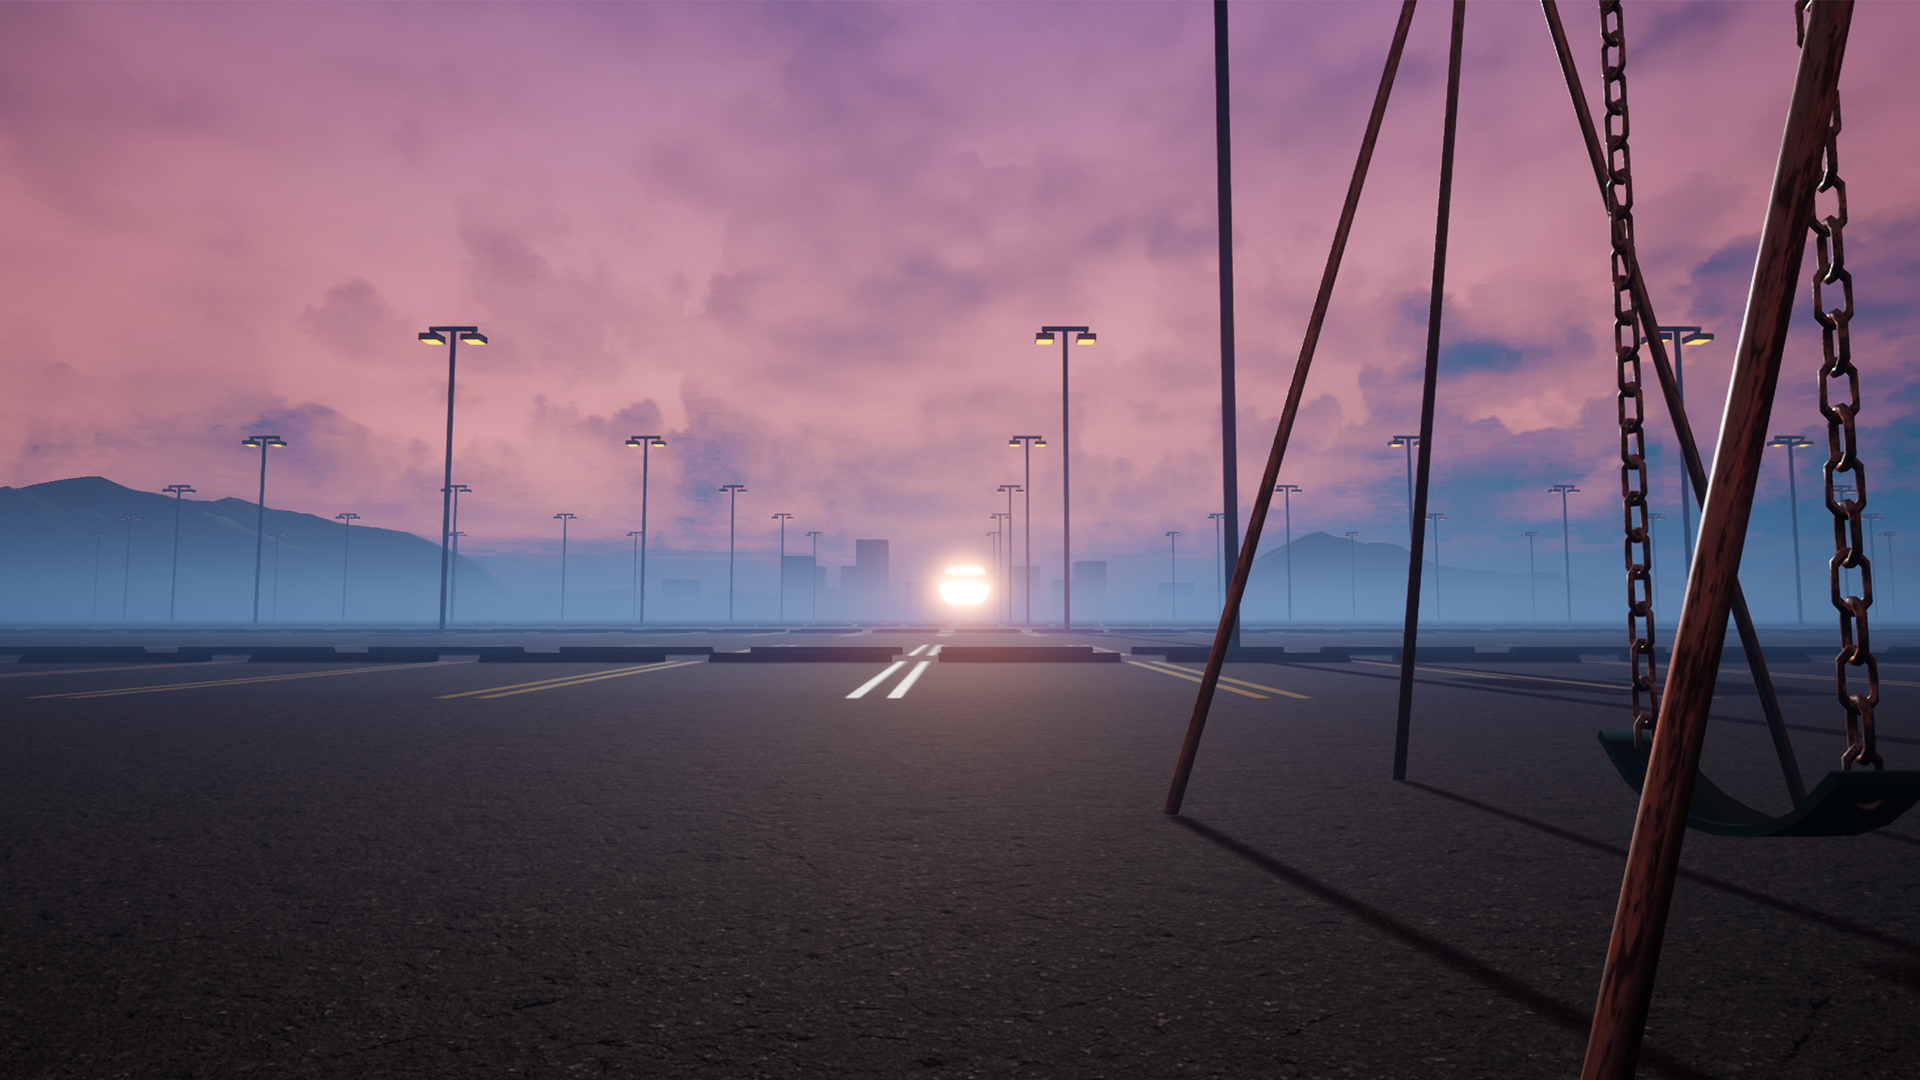 Outdoor parking lot with pink tones in the sunset